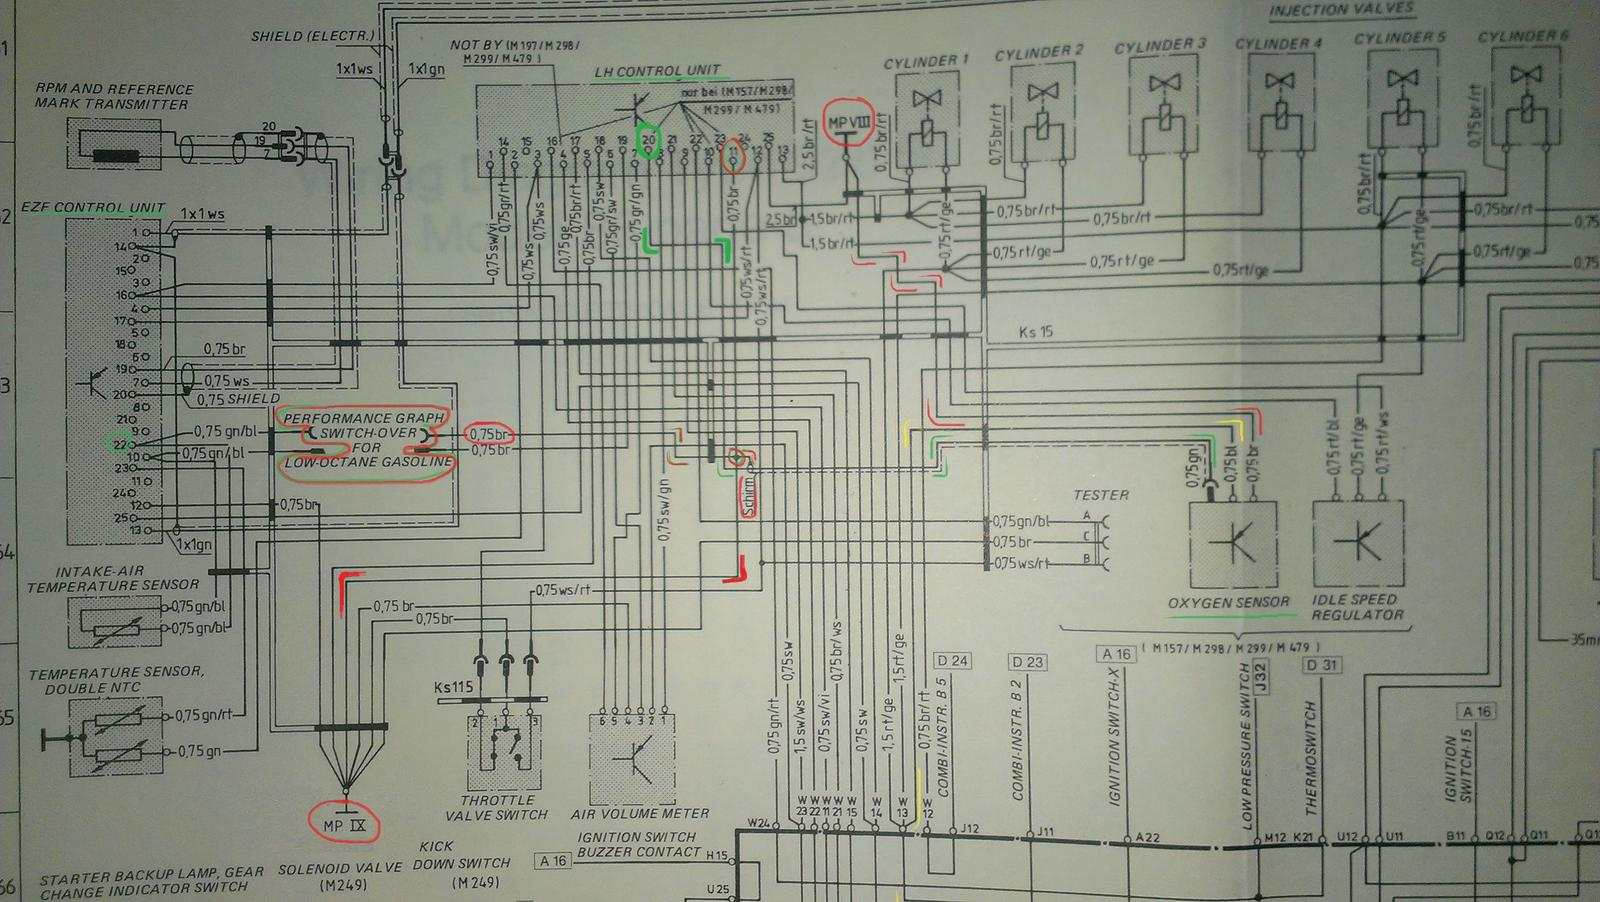 porsche wiring diagram basic house diagrams brittle o2 male connector w green wire under ce panel - rennlist discussion forums